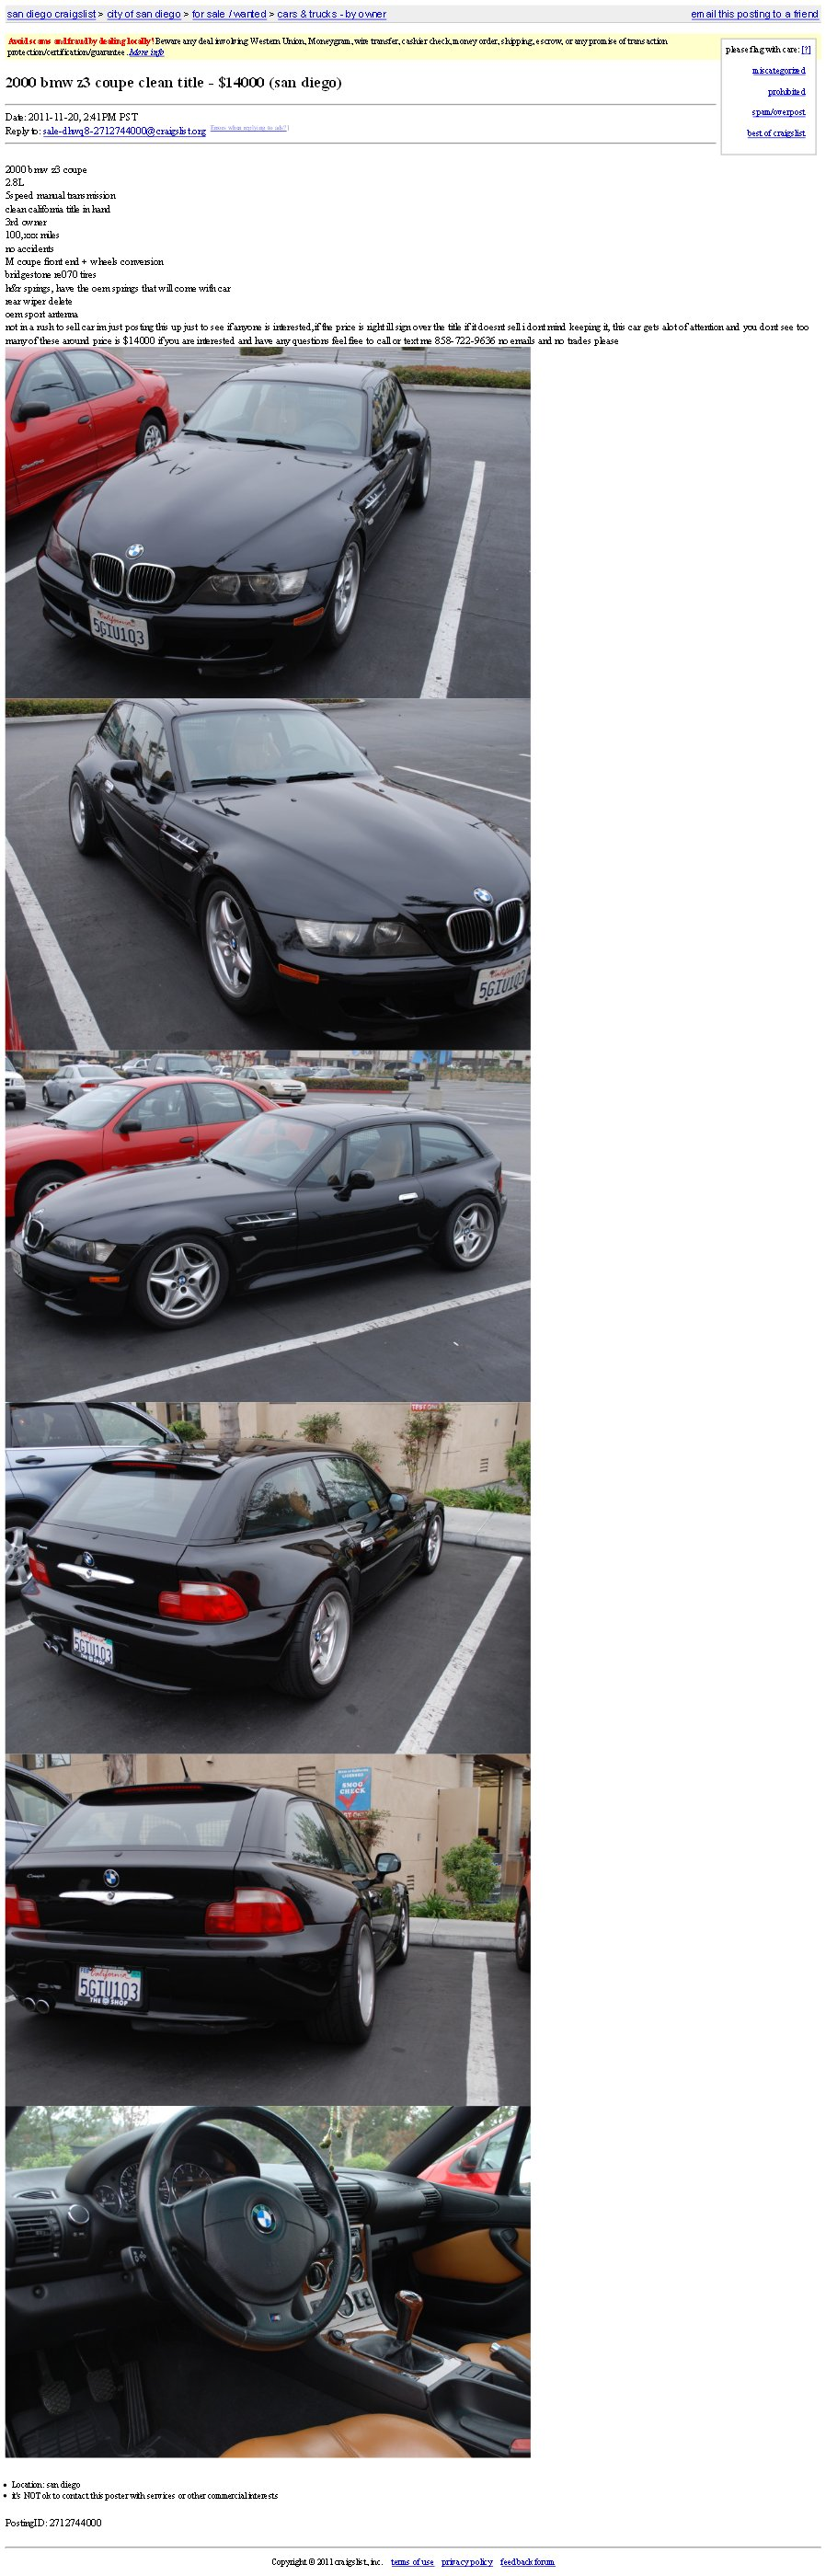 2000 Z3 Coupe | Jet Black | Walnut | San Diego, CA Craigslist